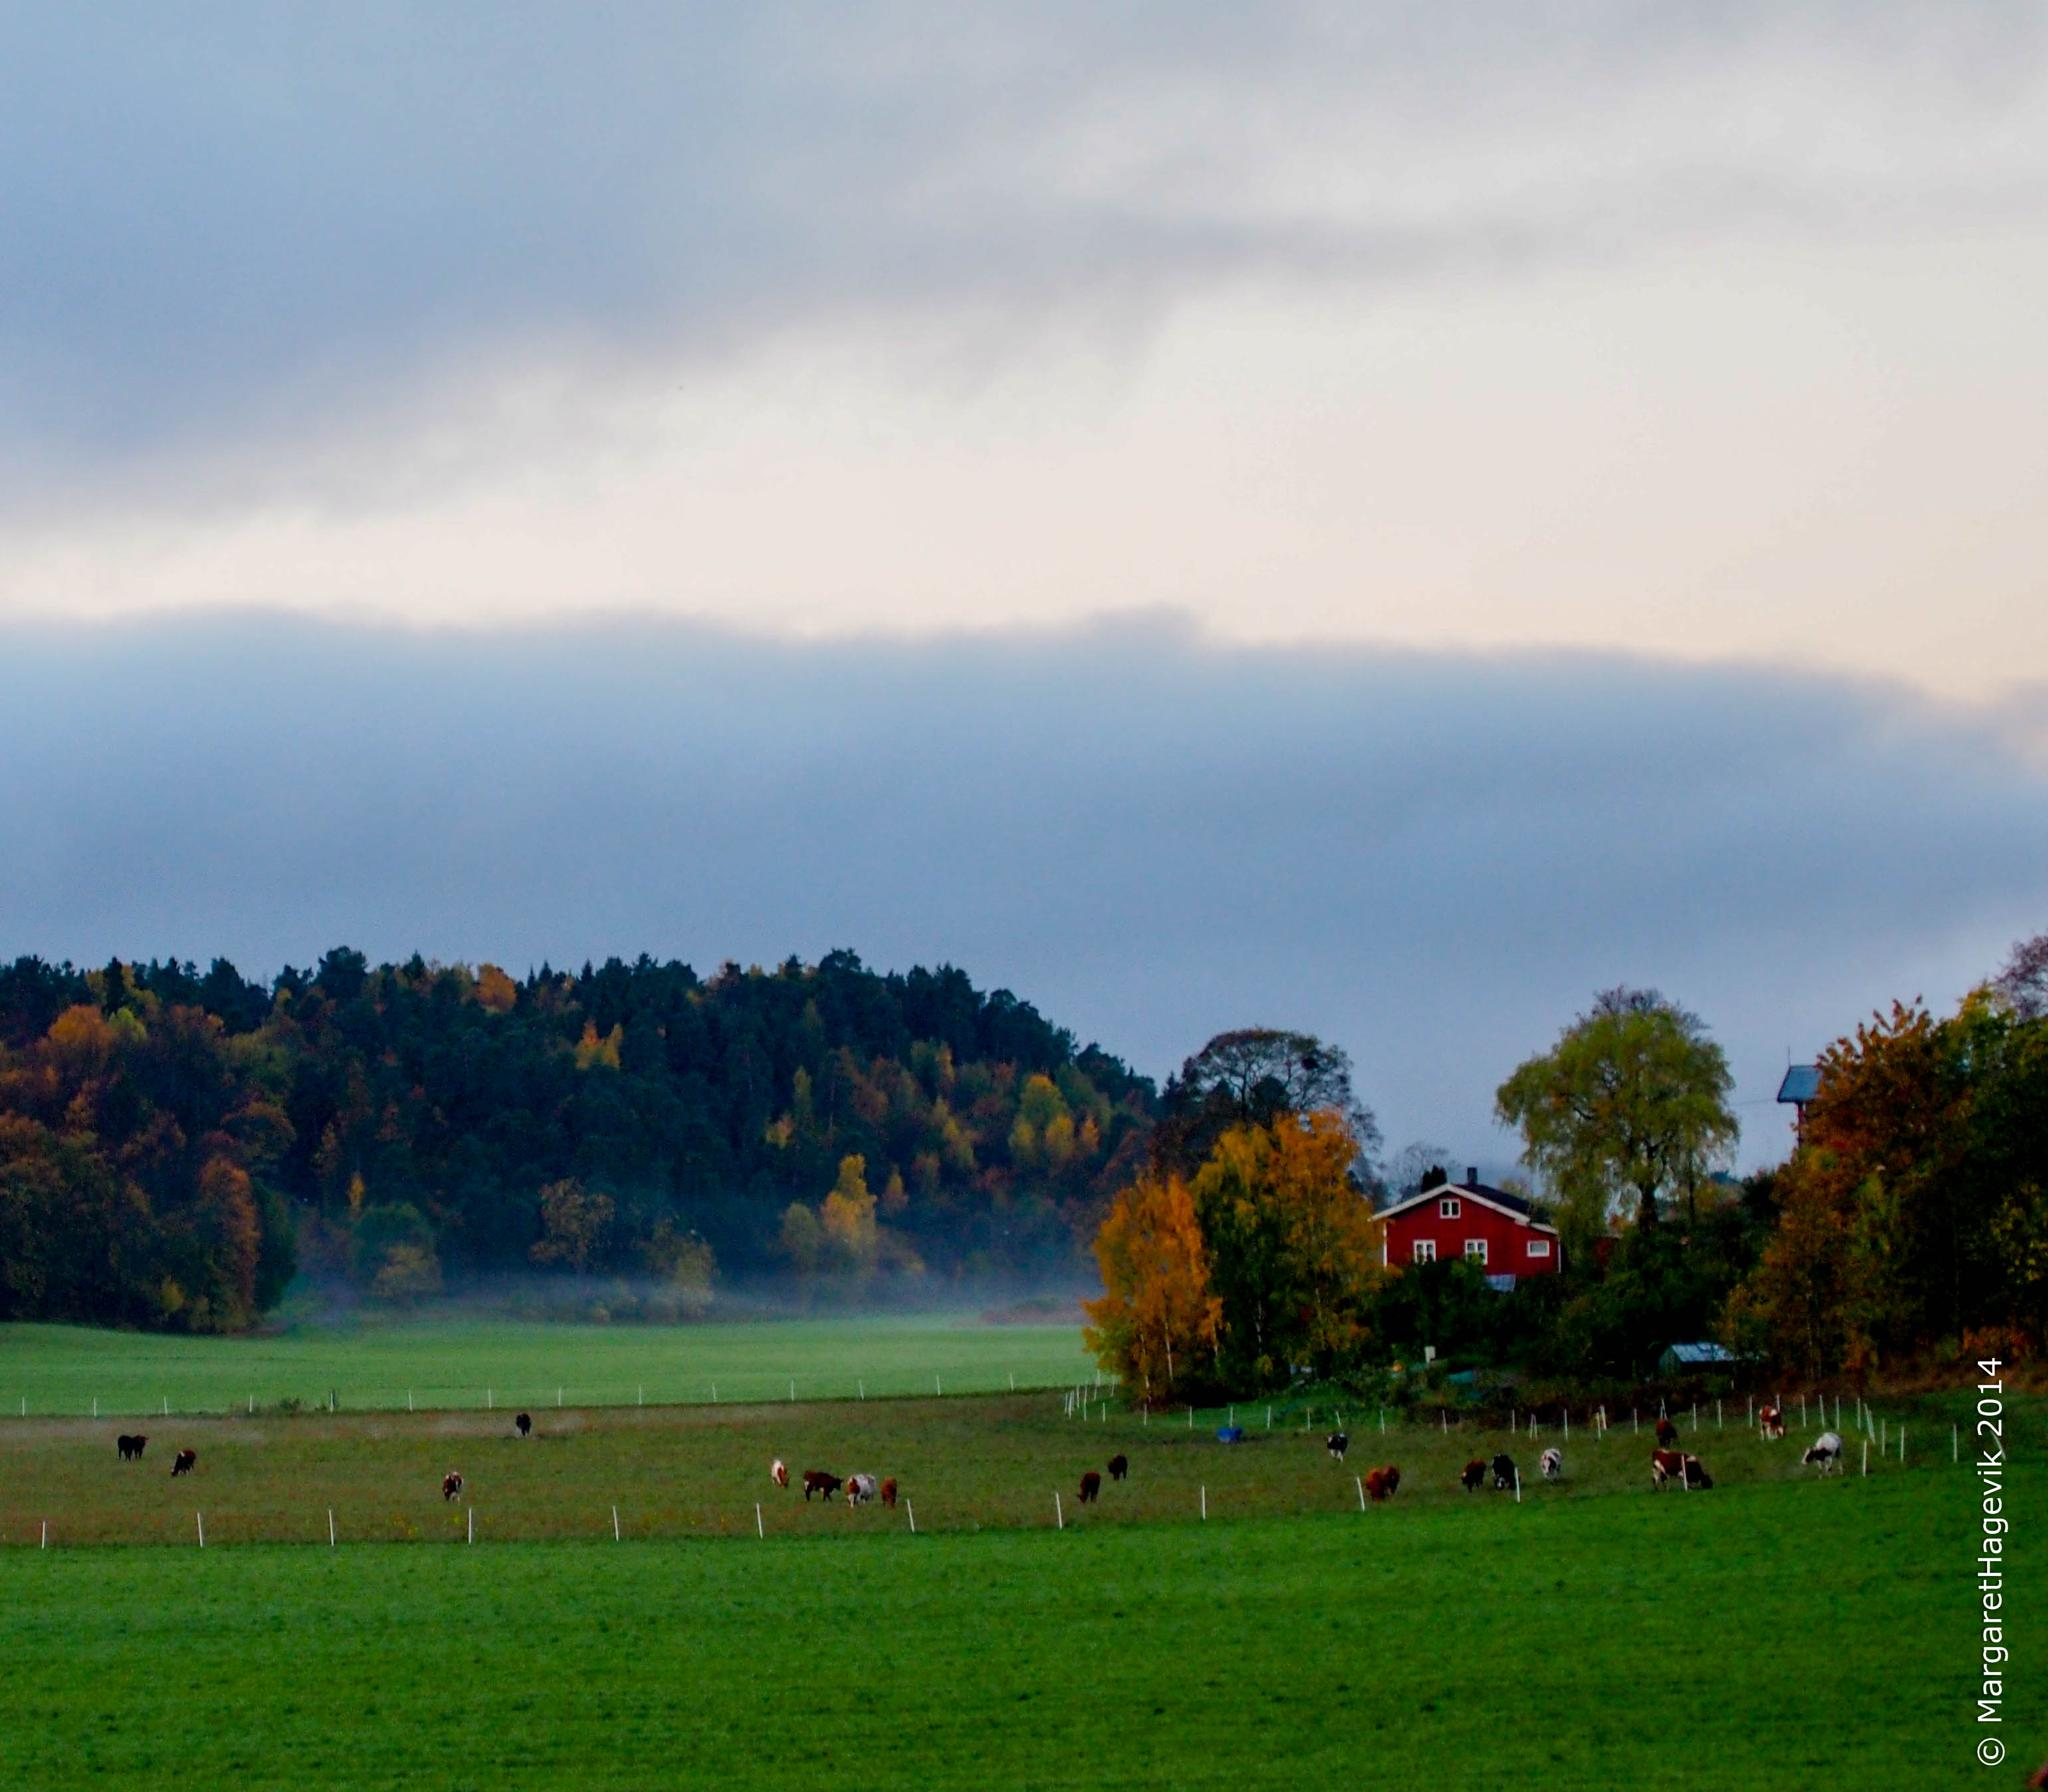 Green pastures in the morning by Margaret Brynildsen Hagevik